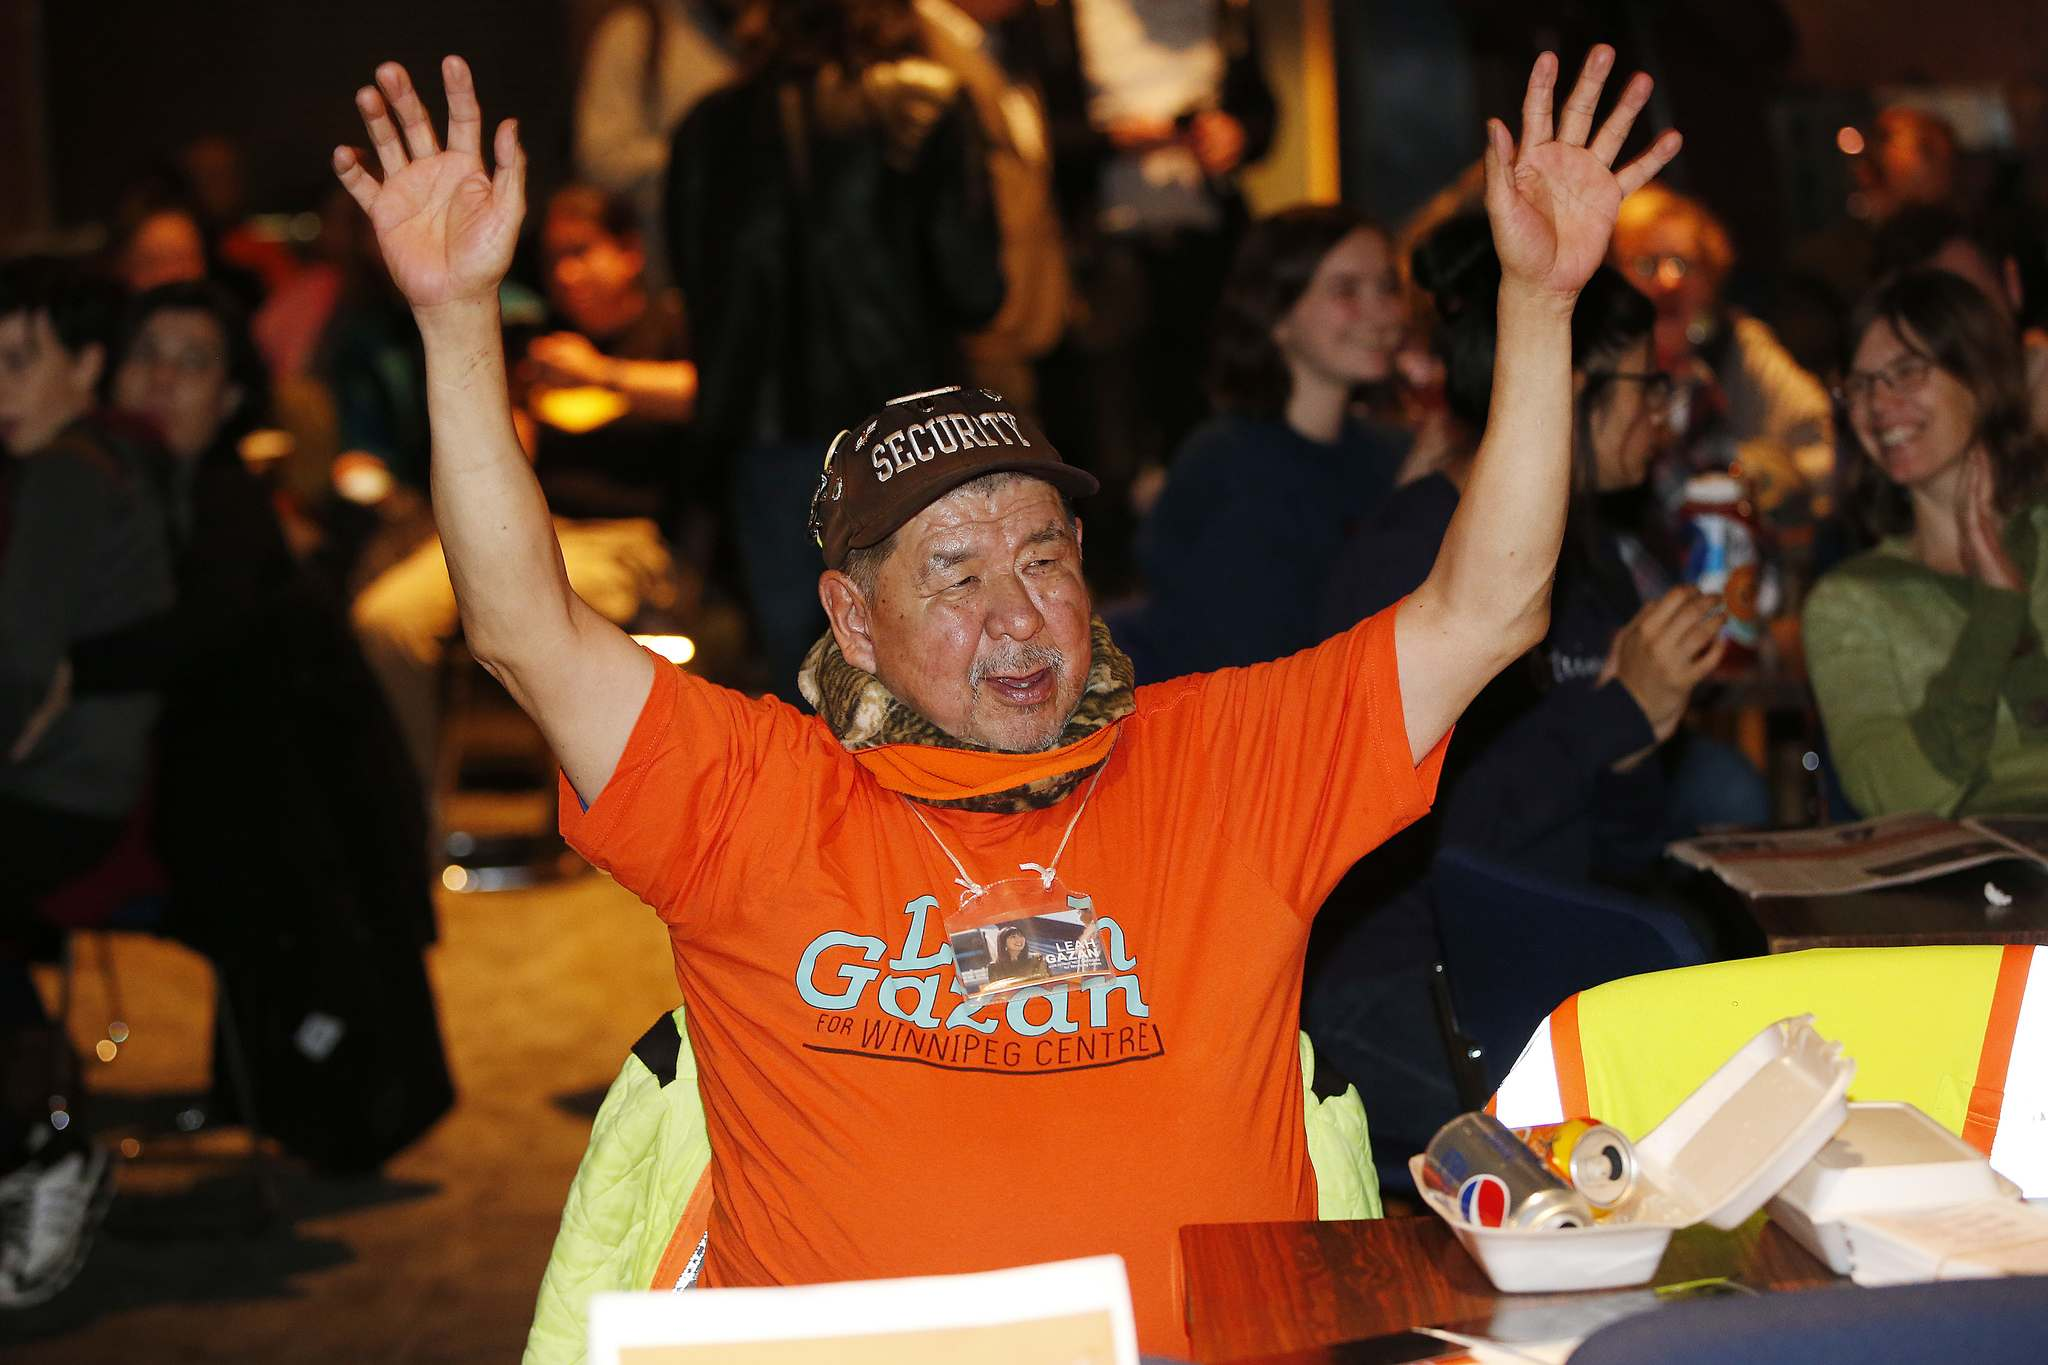 Supporters of Leah Gazan celebrate at the West End Cultural Centre. (John Woods / Winnipeg Free Press)</p>